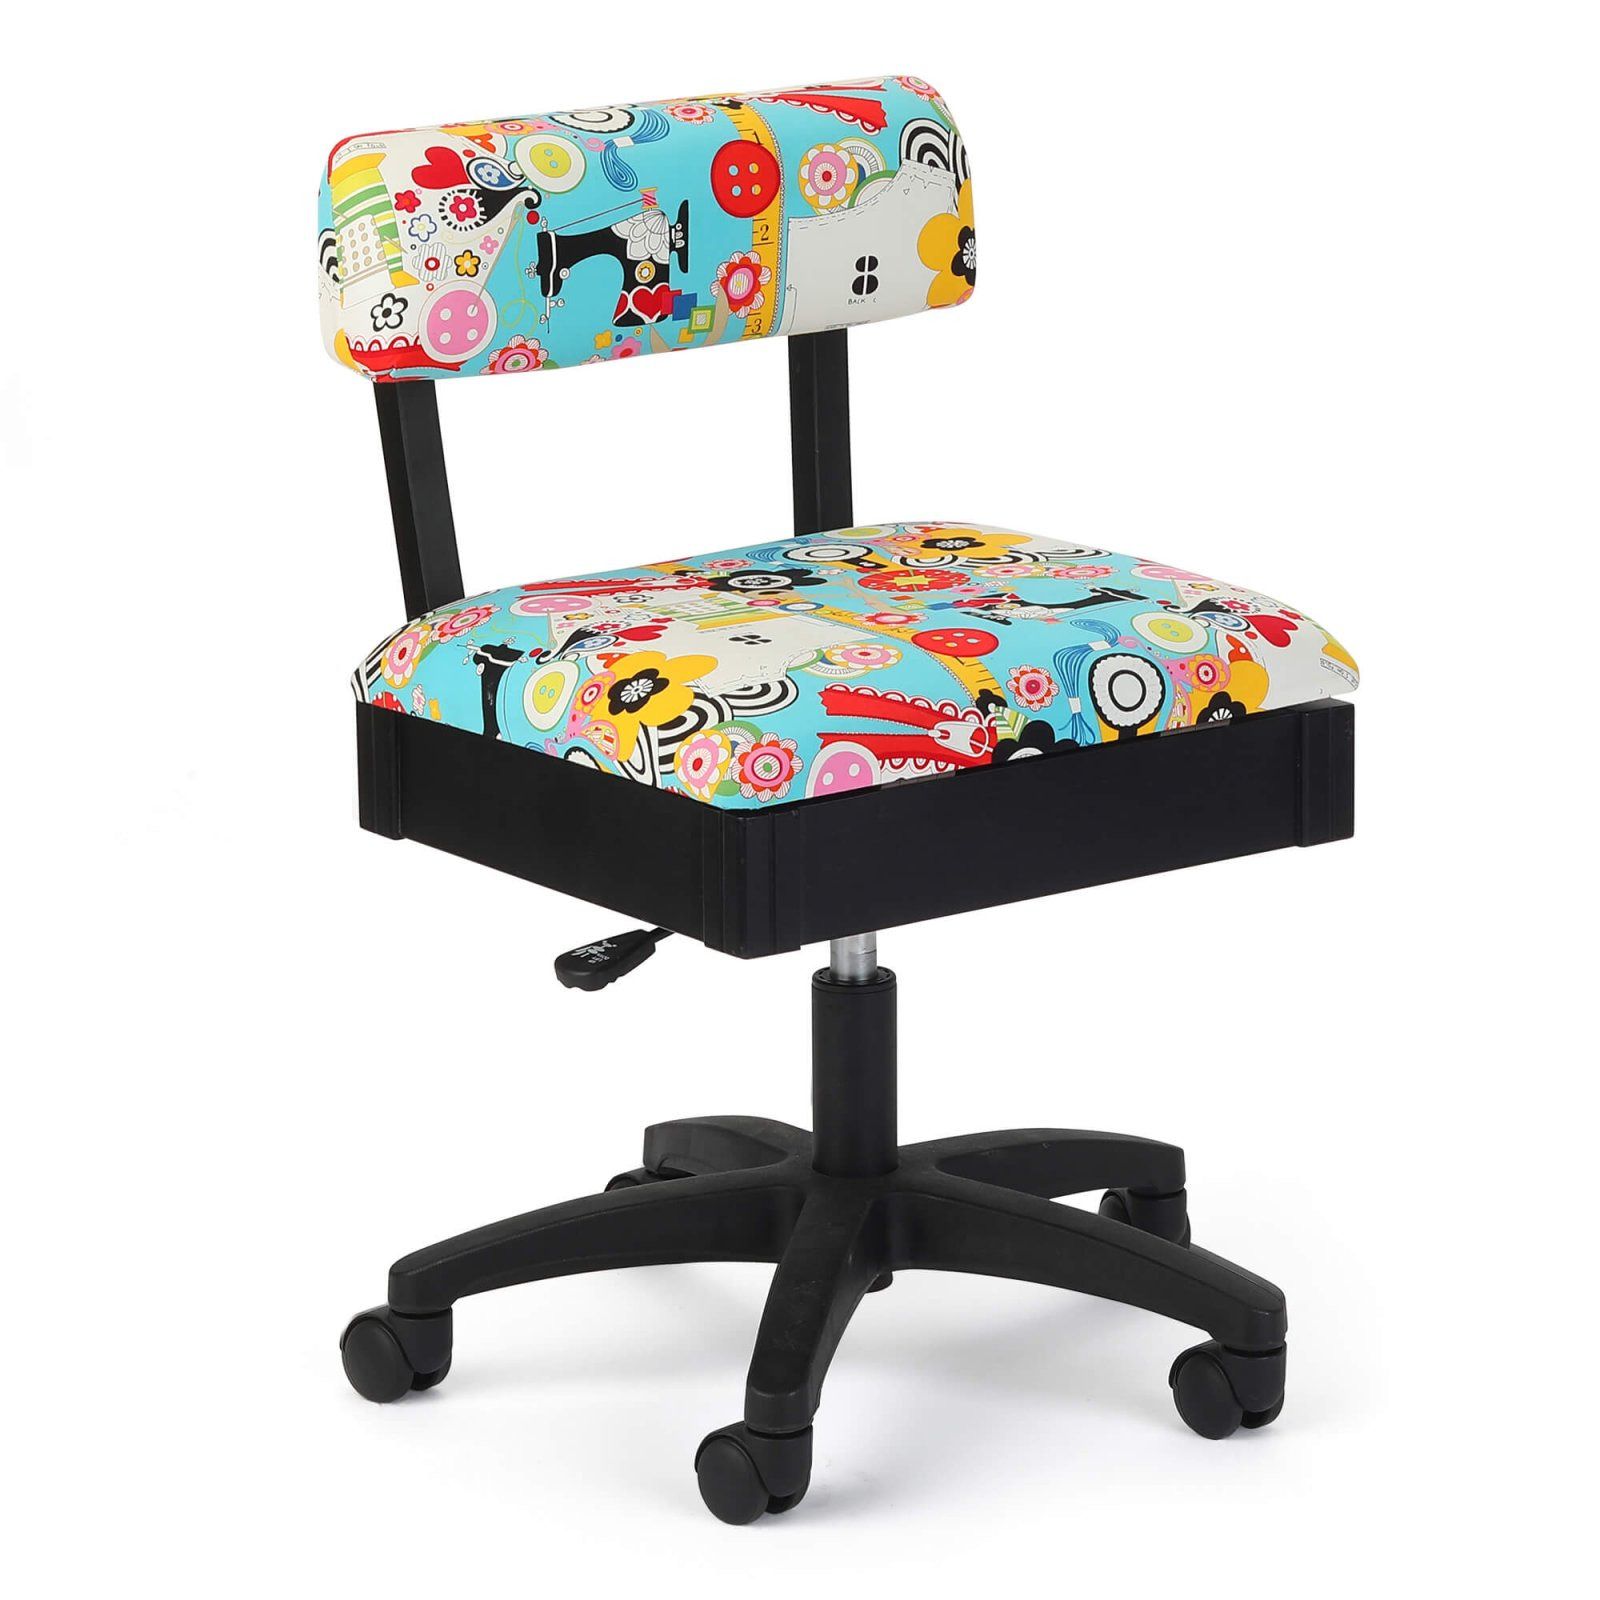 Sew Wow Sew Now Hydraulic Sewing Chair